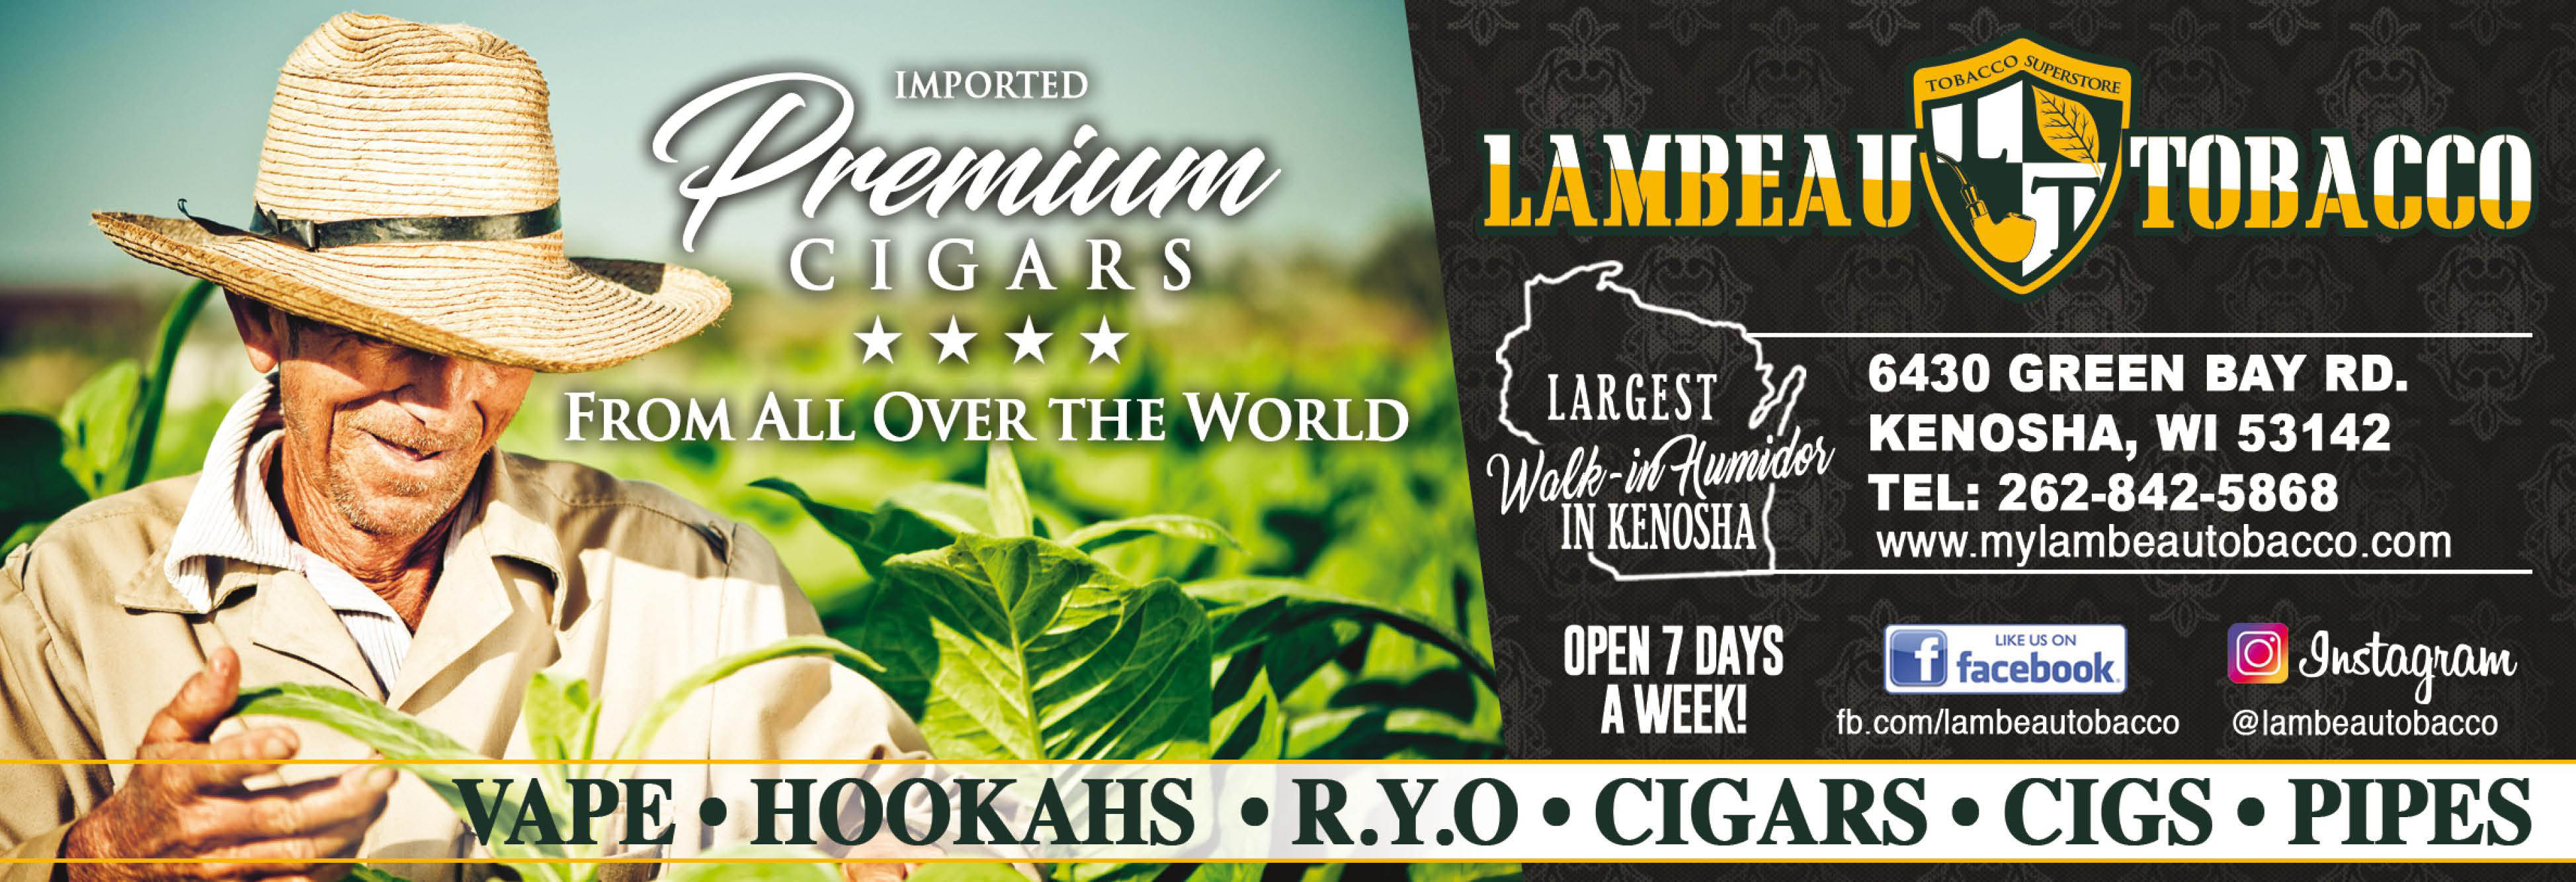 Lambeau Tobacco Cigars Pipes Tobacco in Kenosha, Wisonsin Banner